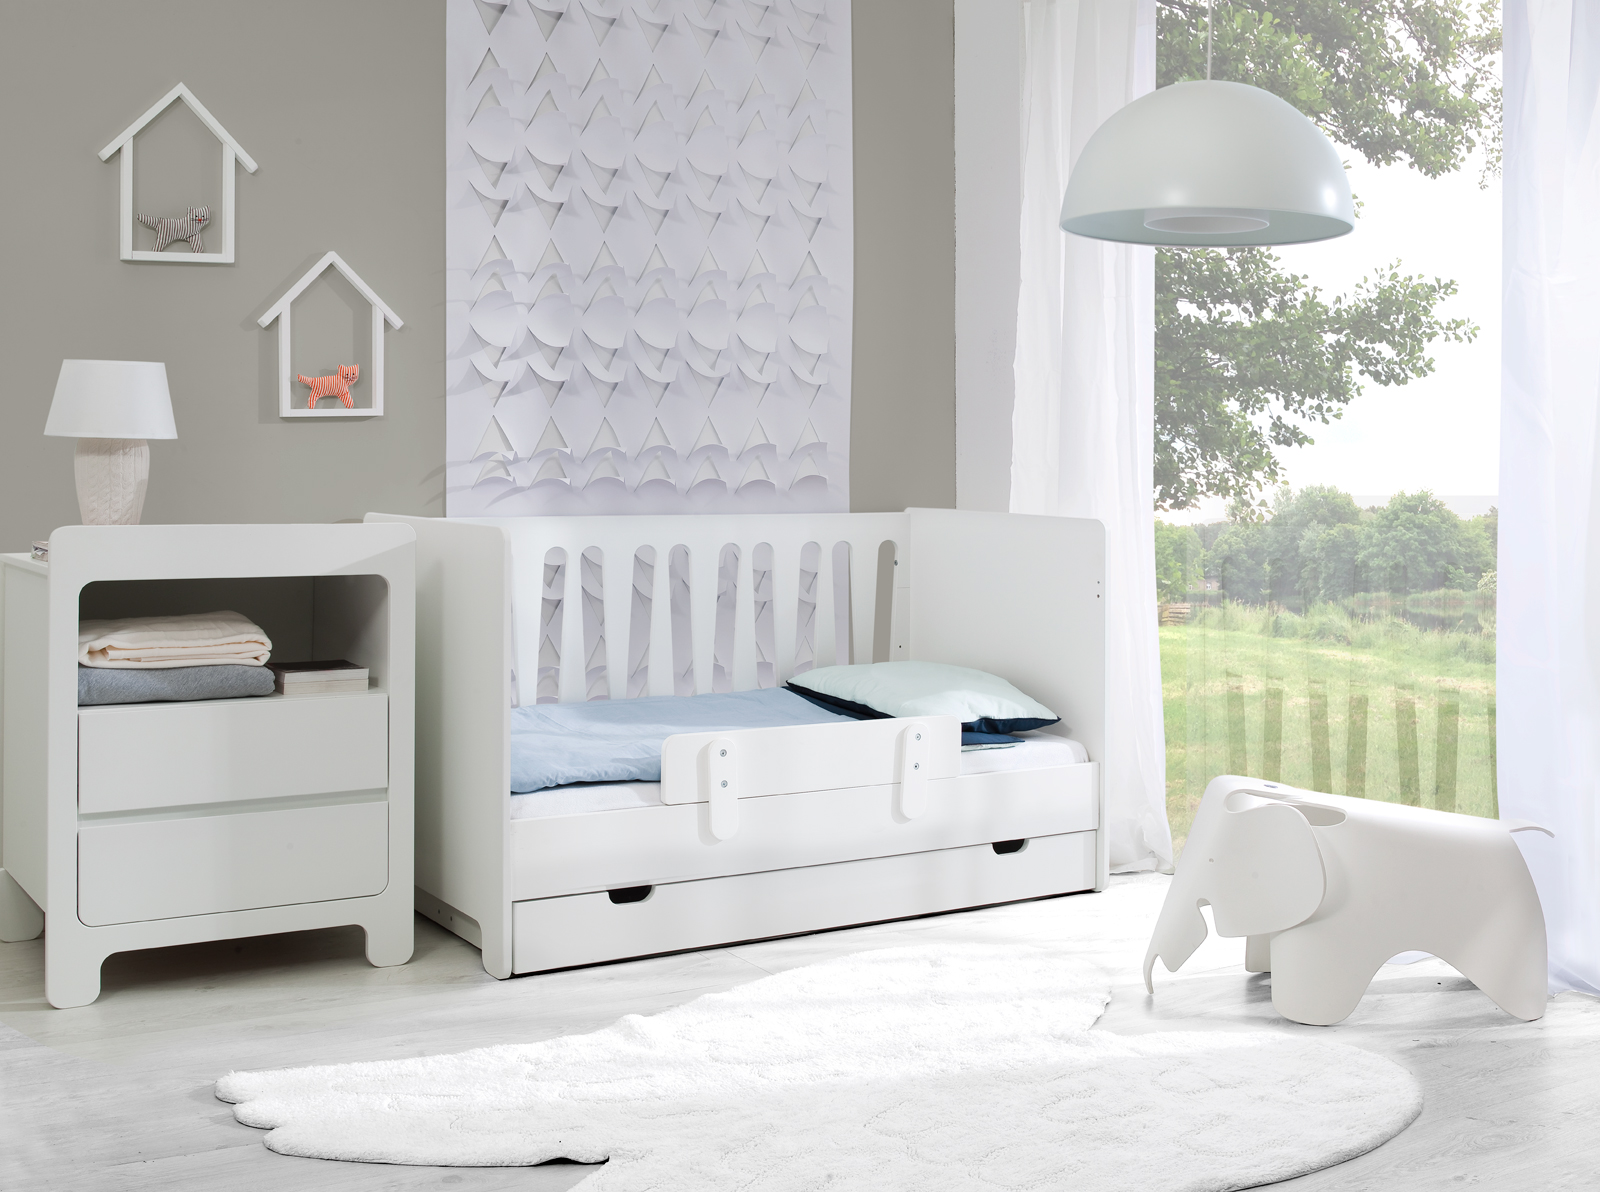 Pinio moon 4 meubles lit 140x70 commode 2 tiroirs for Chambre evolutive bebe